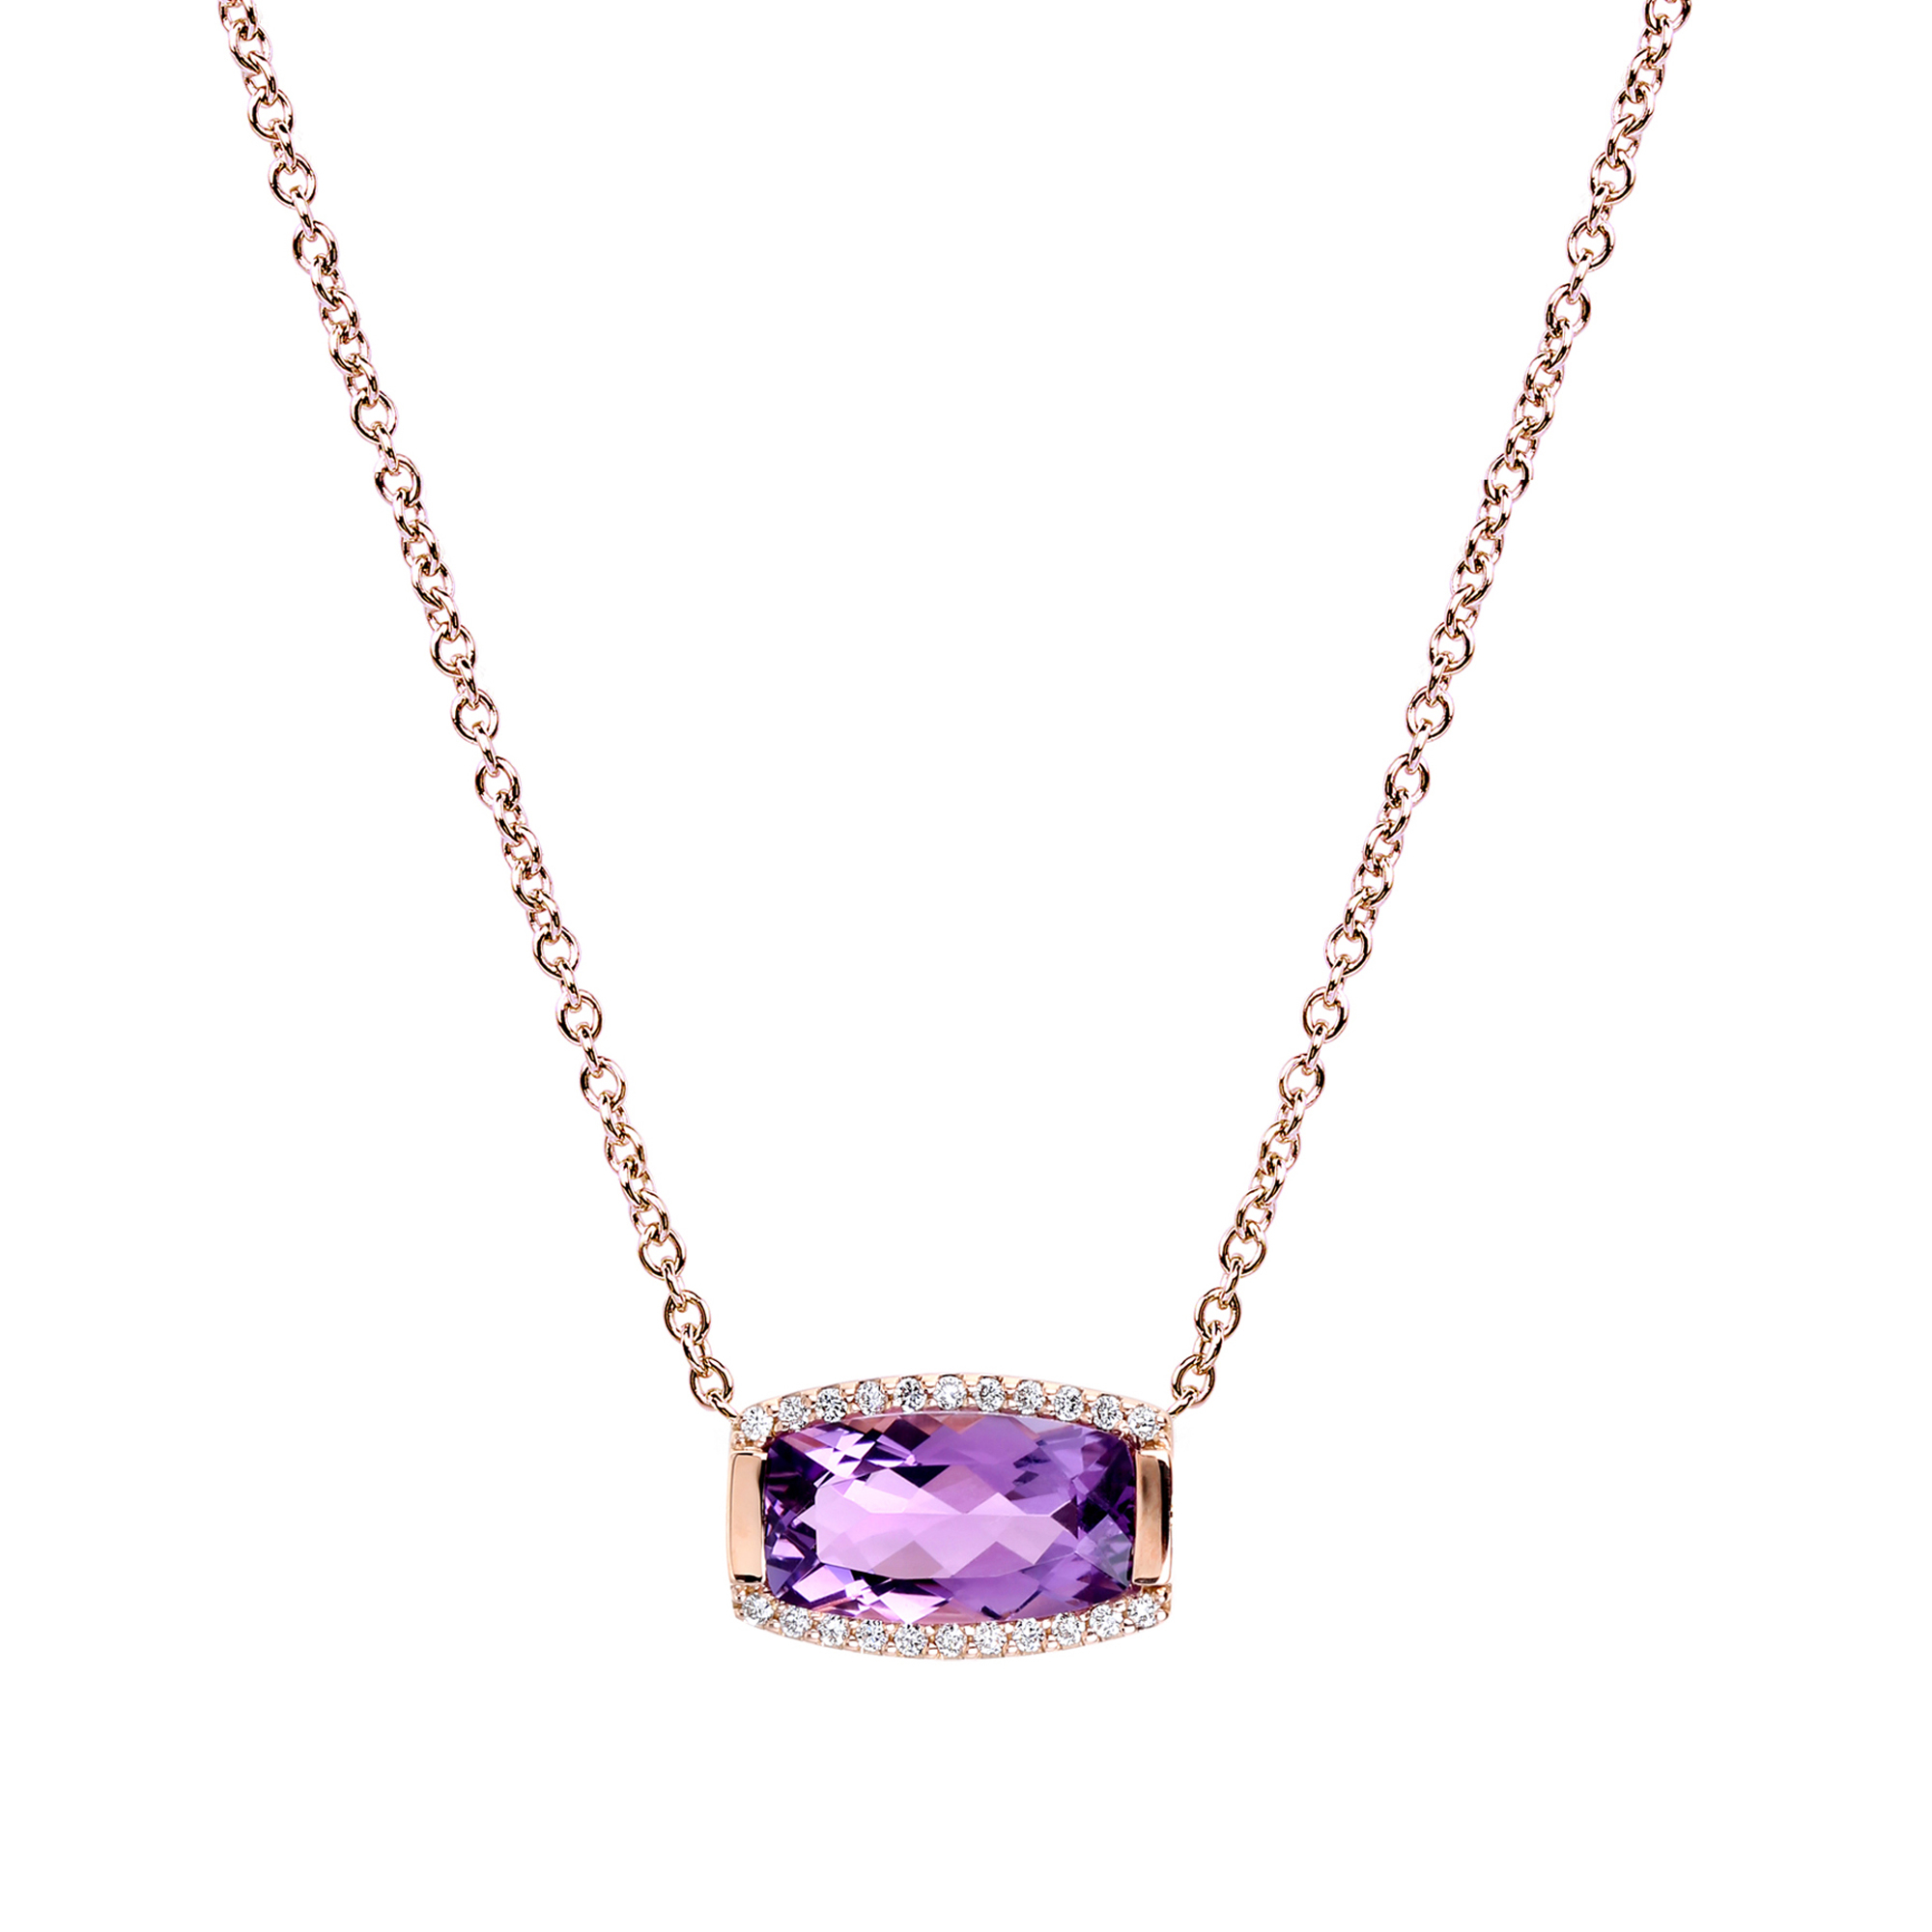 Jane Taylor Amethyst & Pavé Diamond Tonneau Necklace